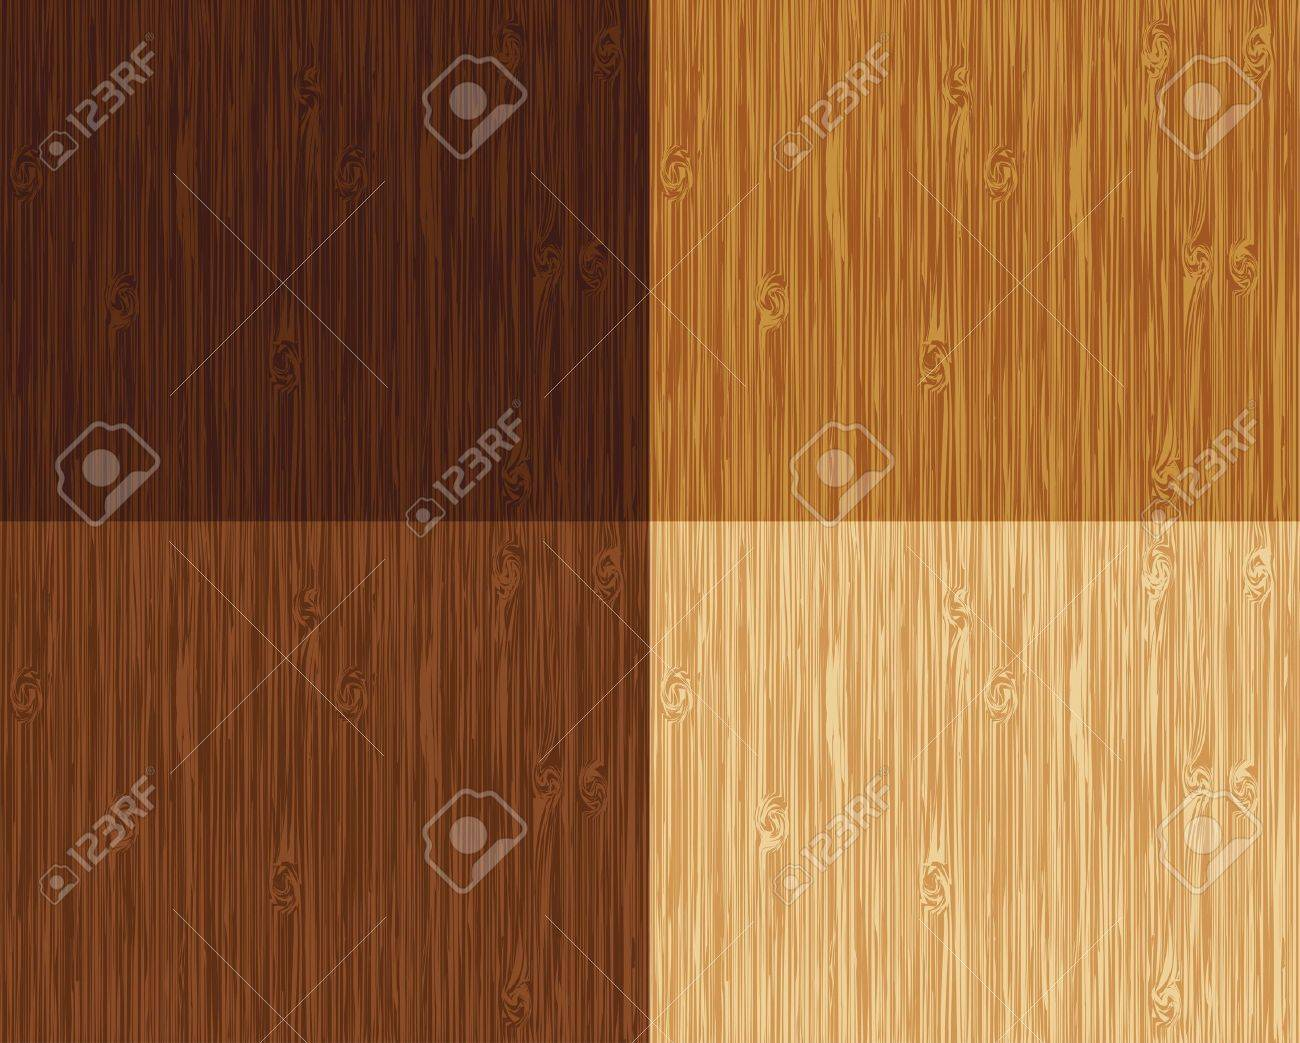 Seamless wooden pattern. 4 color variations. Stock Vector - 10617689